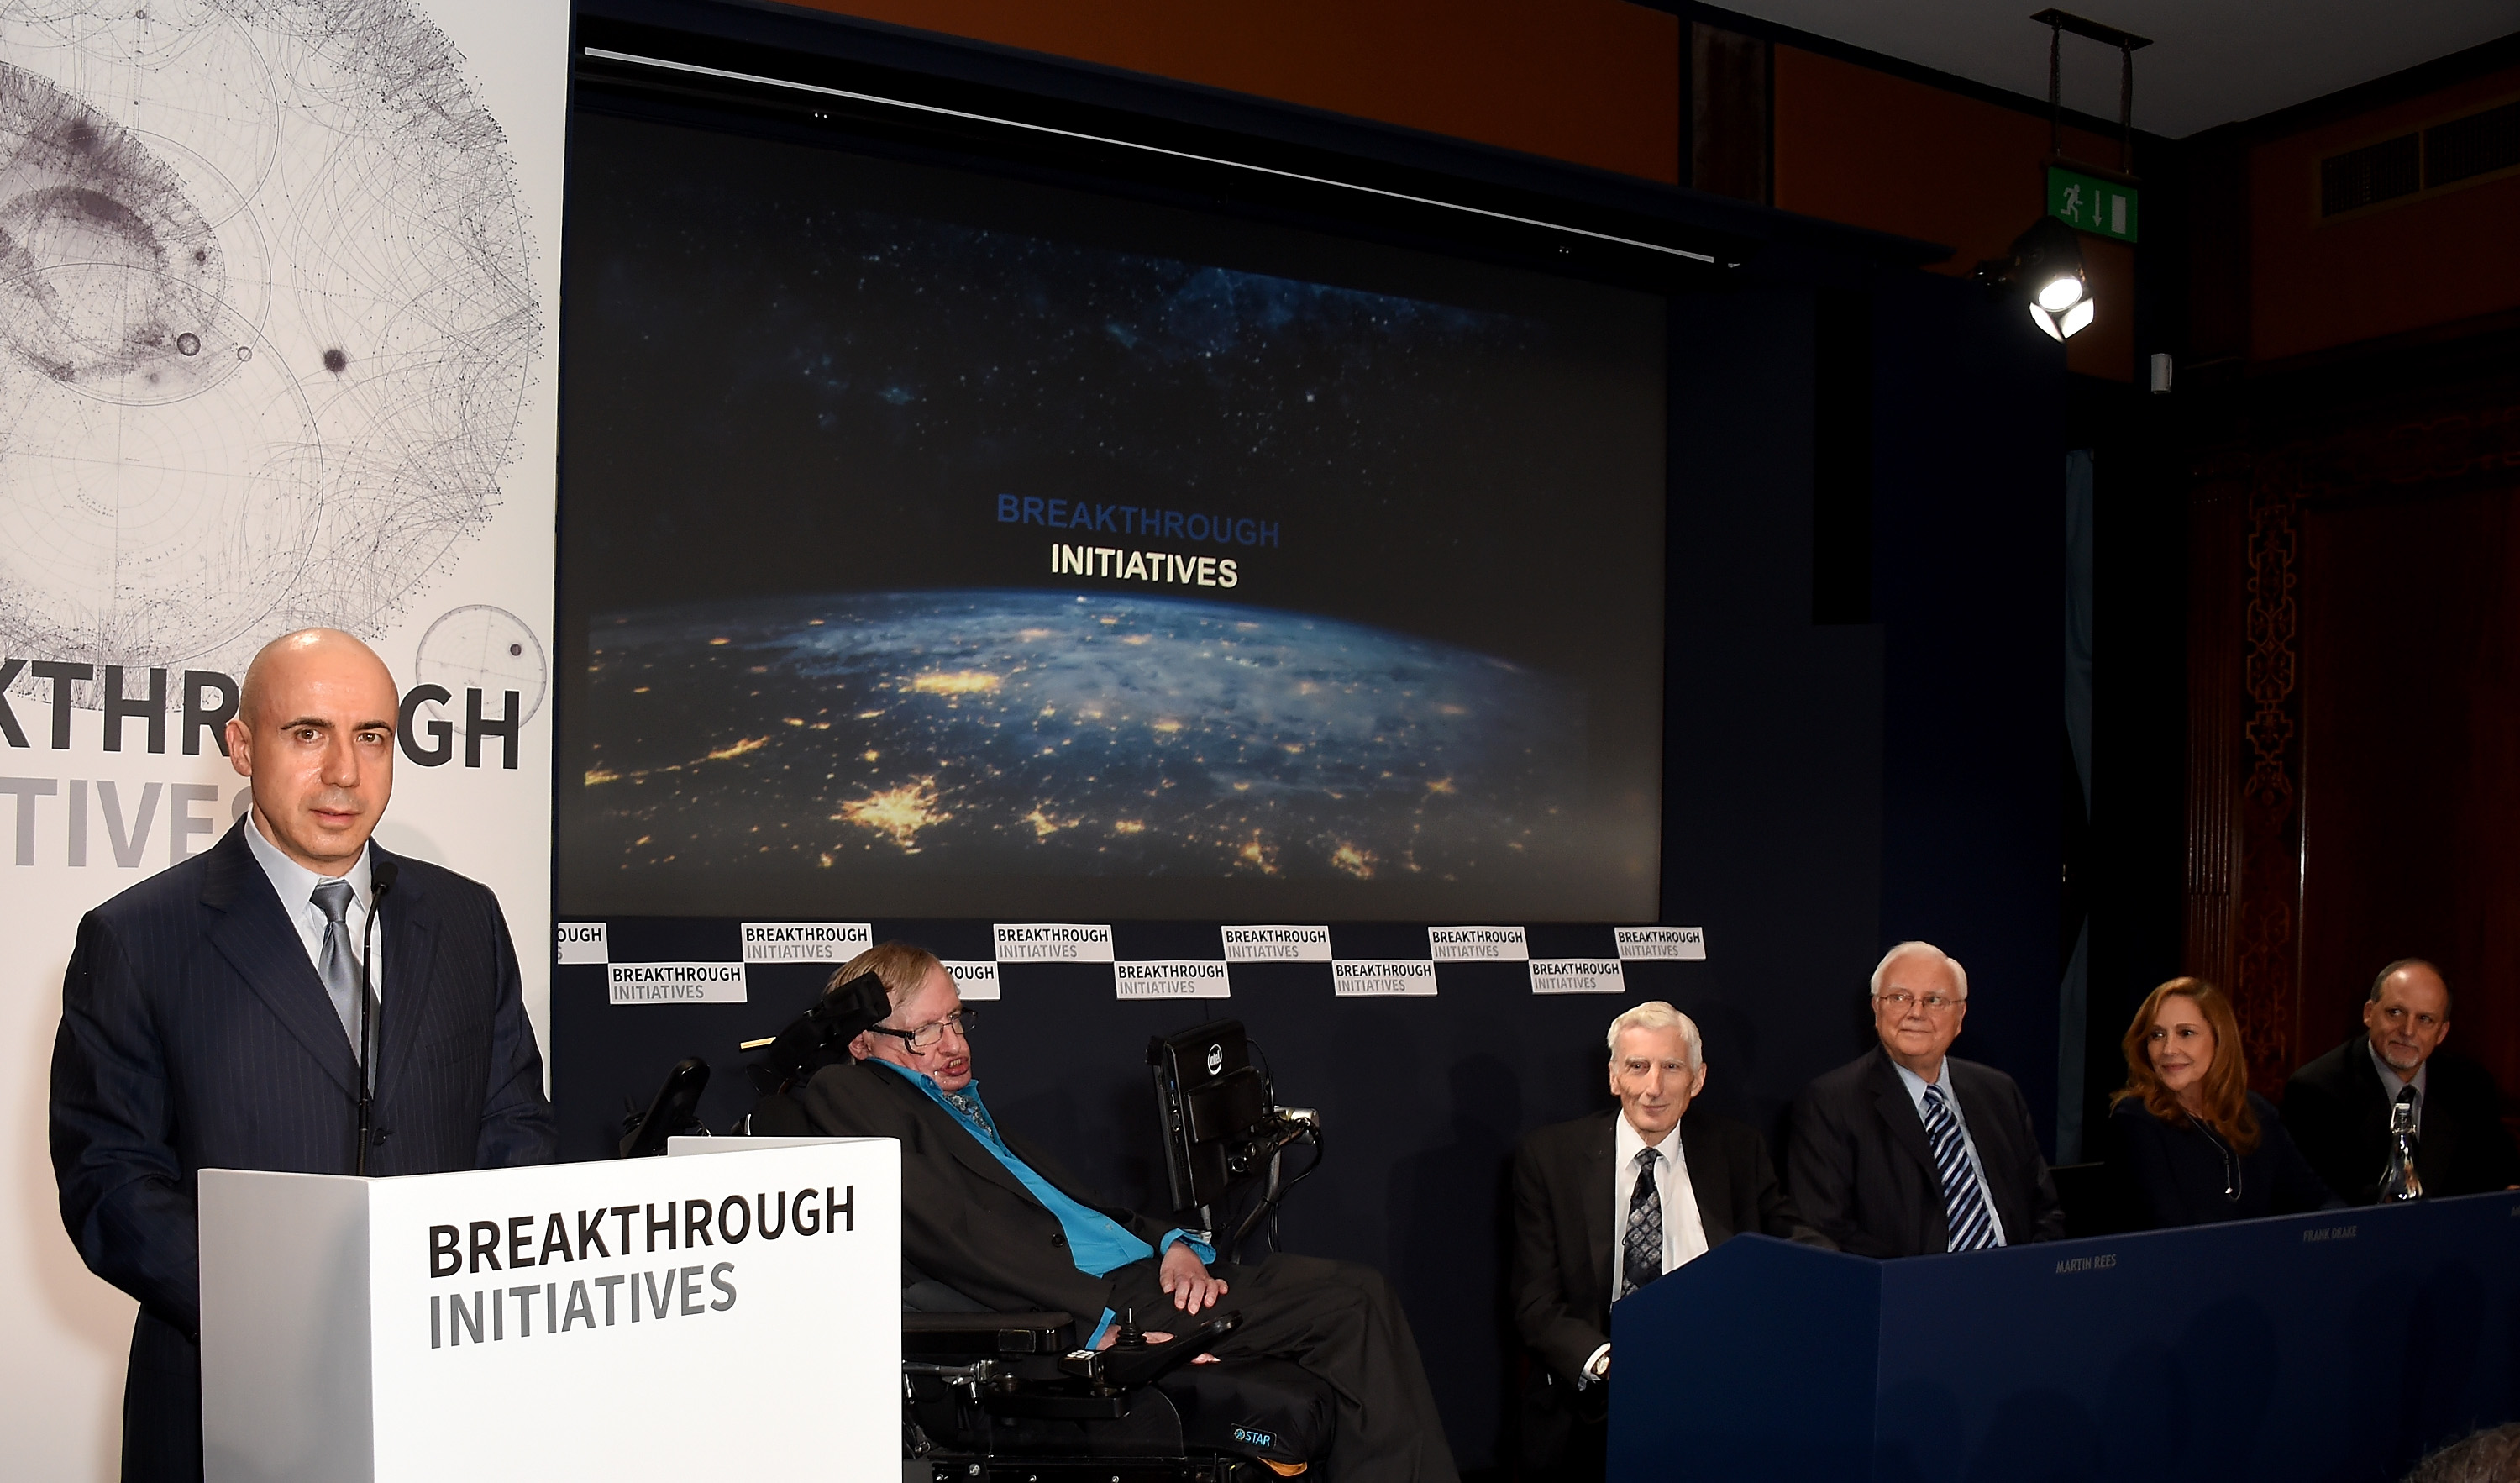 DST Global Founder Yuri Milner, Theoretical Physicist Stephen Hawking, Cosmologist and astrophysicist Lord Martin Rees, Chairman Emeritus, SETI Institute Frank Drake, Creative Director of the Interstellar Message, NASA Voyager Ann Druyan and Professor of Astronomy, University of California Geoff Marcy attend a press conference on the Breakthrough Life in the Universe Initiatives.